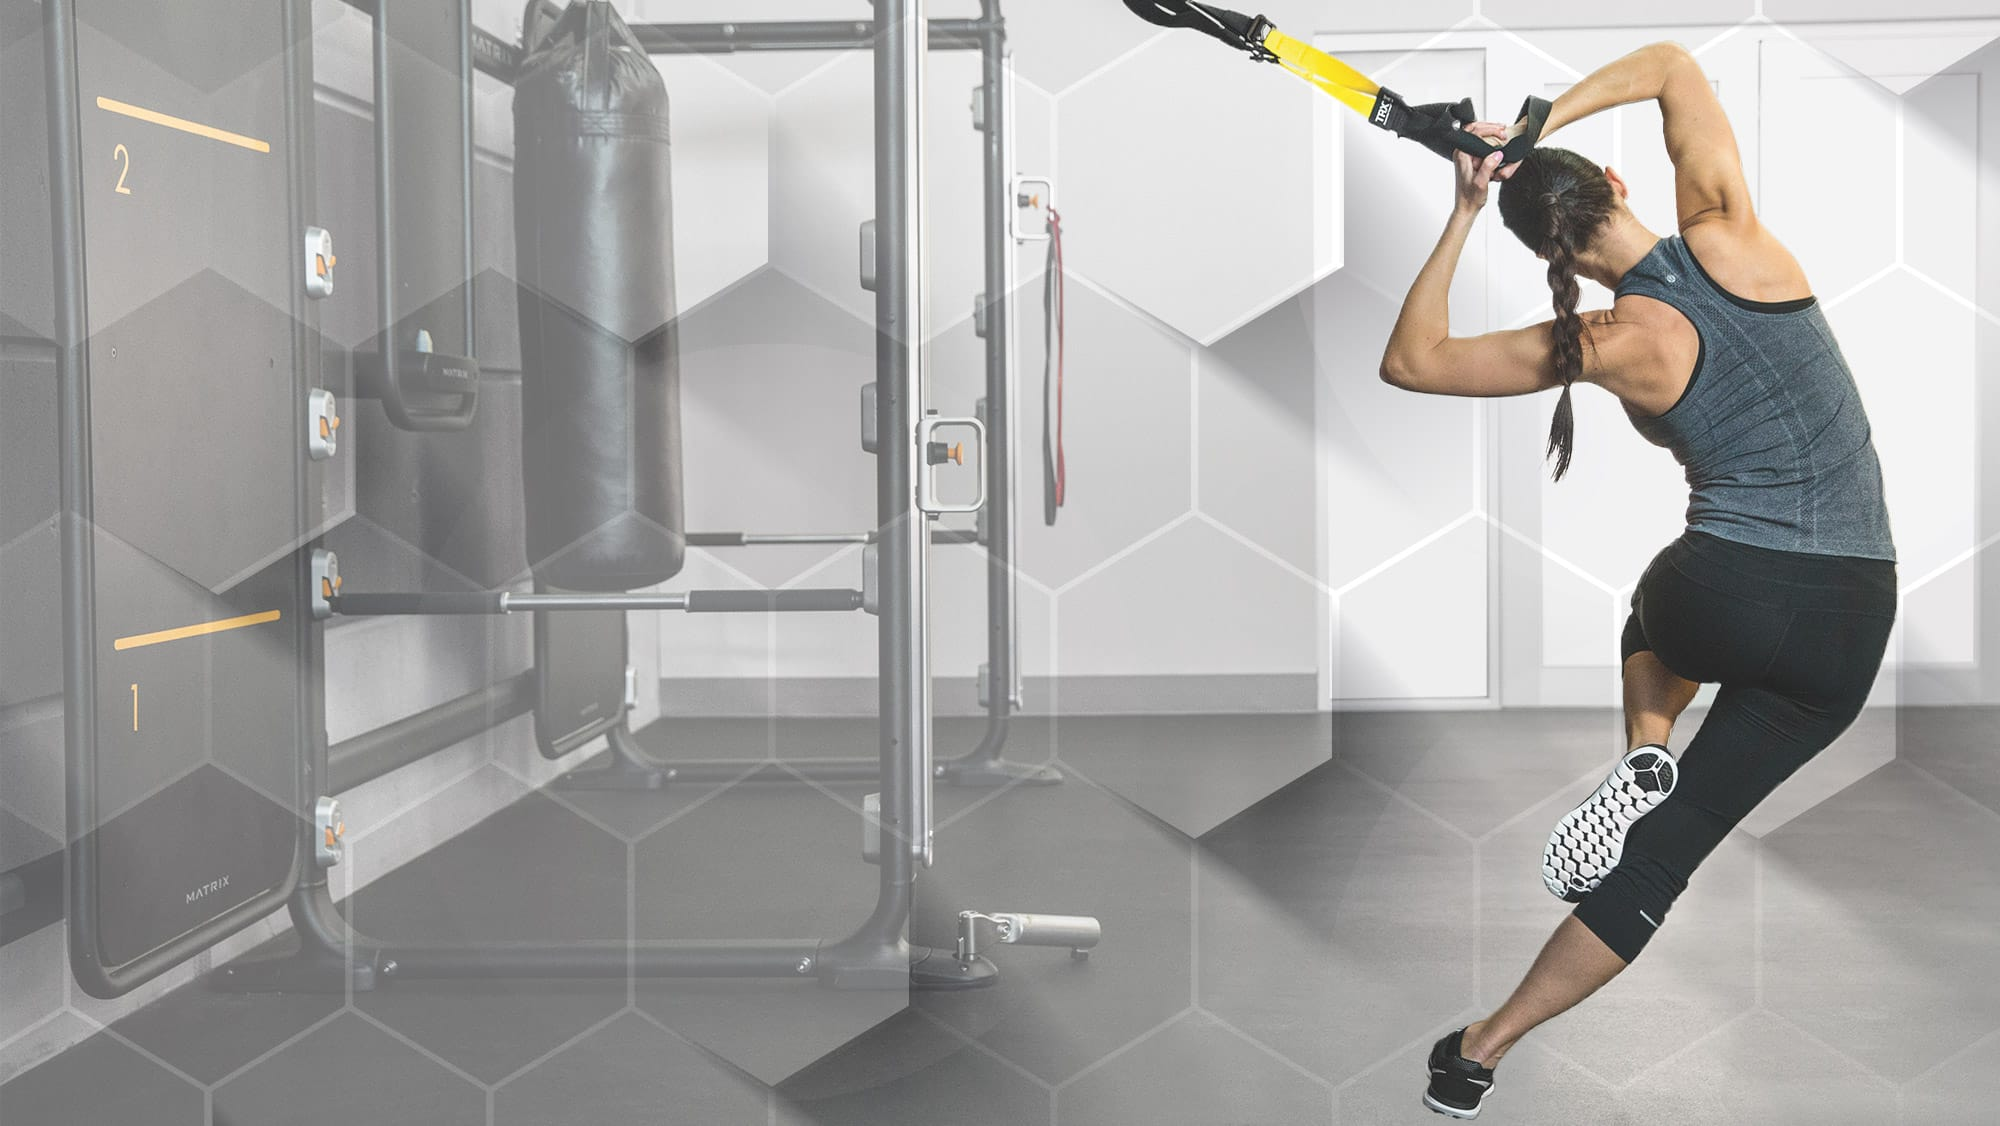 Commercial fitness home gym equipment matrix fitness united